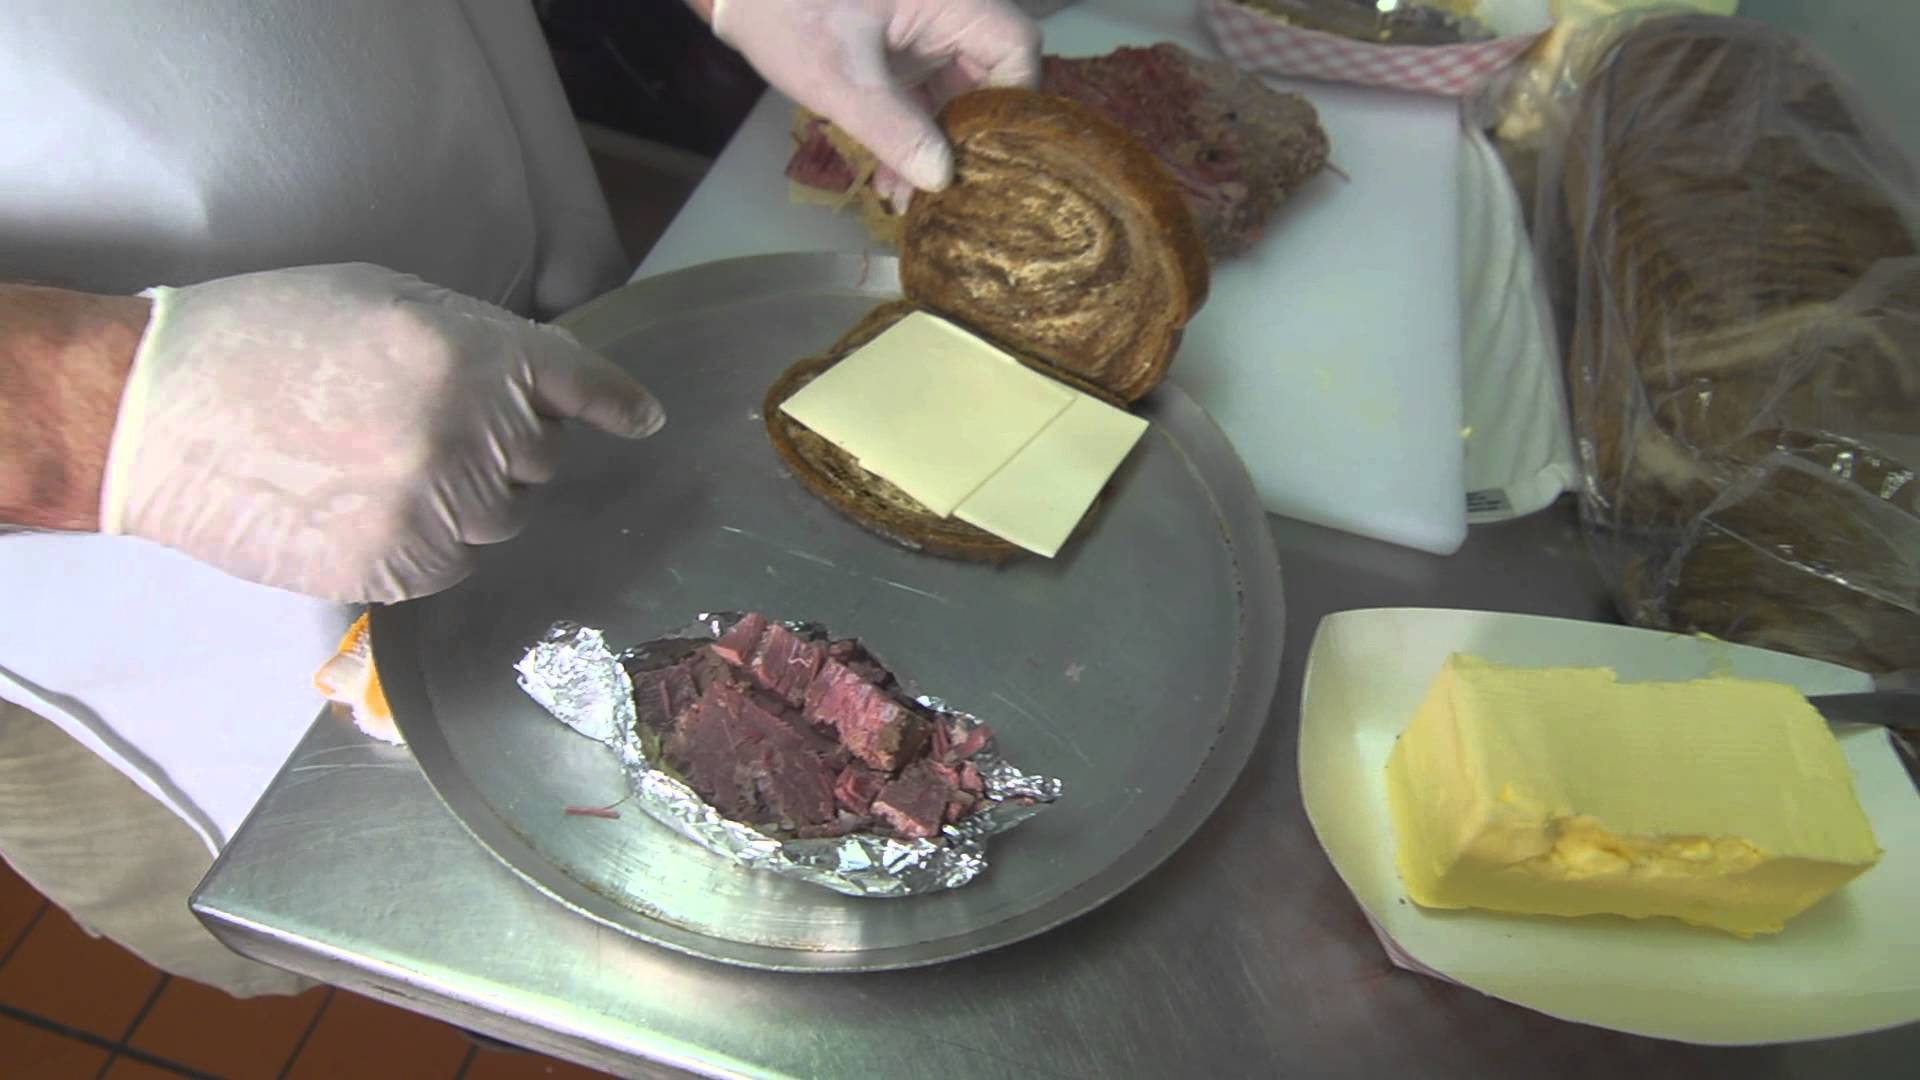 Official-Omaha-Blackstone-Reuben-Sandwich-from-Crescent-Moon